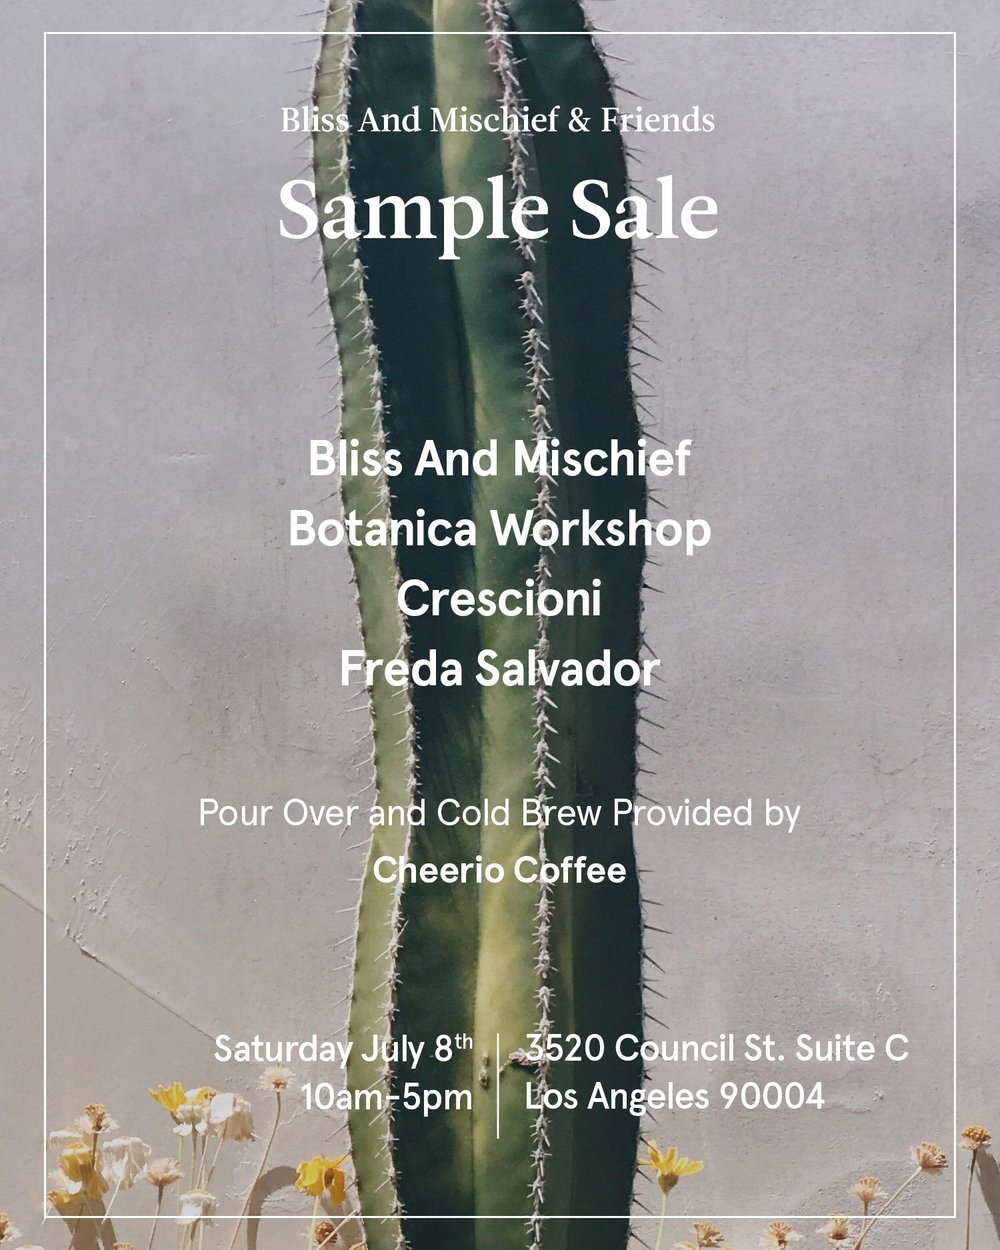 Bliss And Mischief Sample Sale